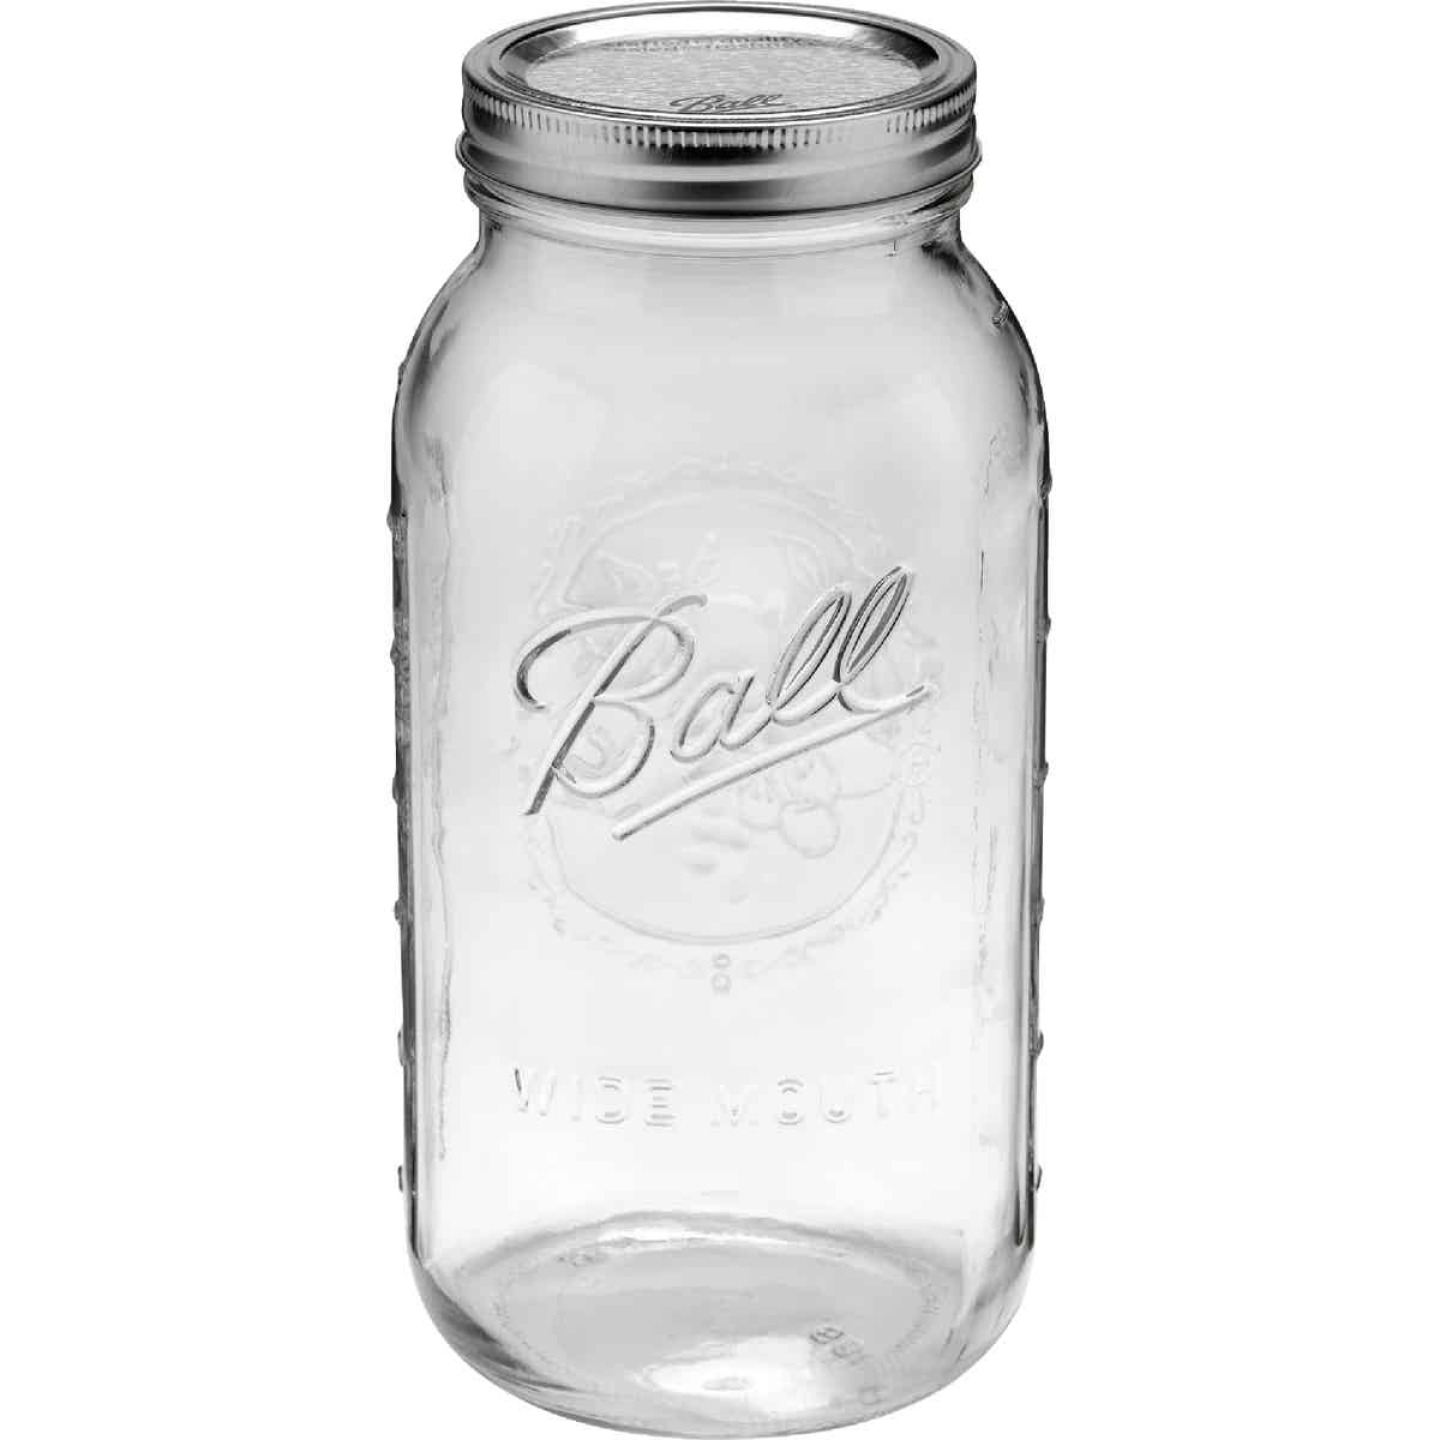 Ball 1/2 Gal. Wide Mouth Mason Canning Jar (6-Count) Image 2